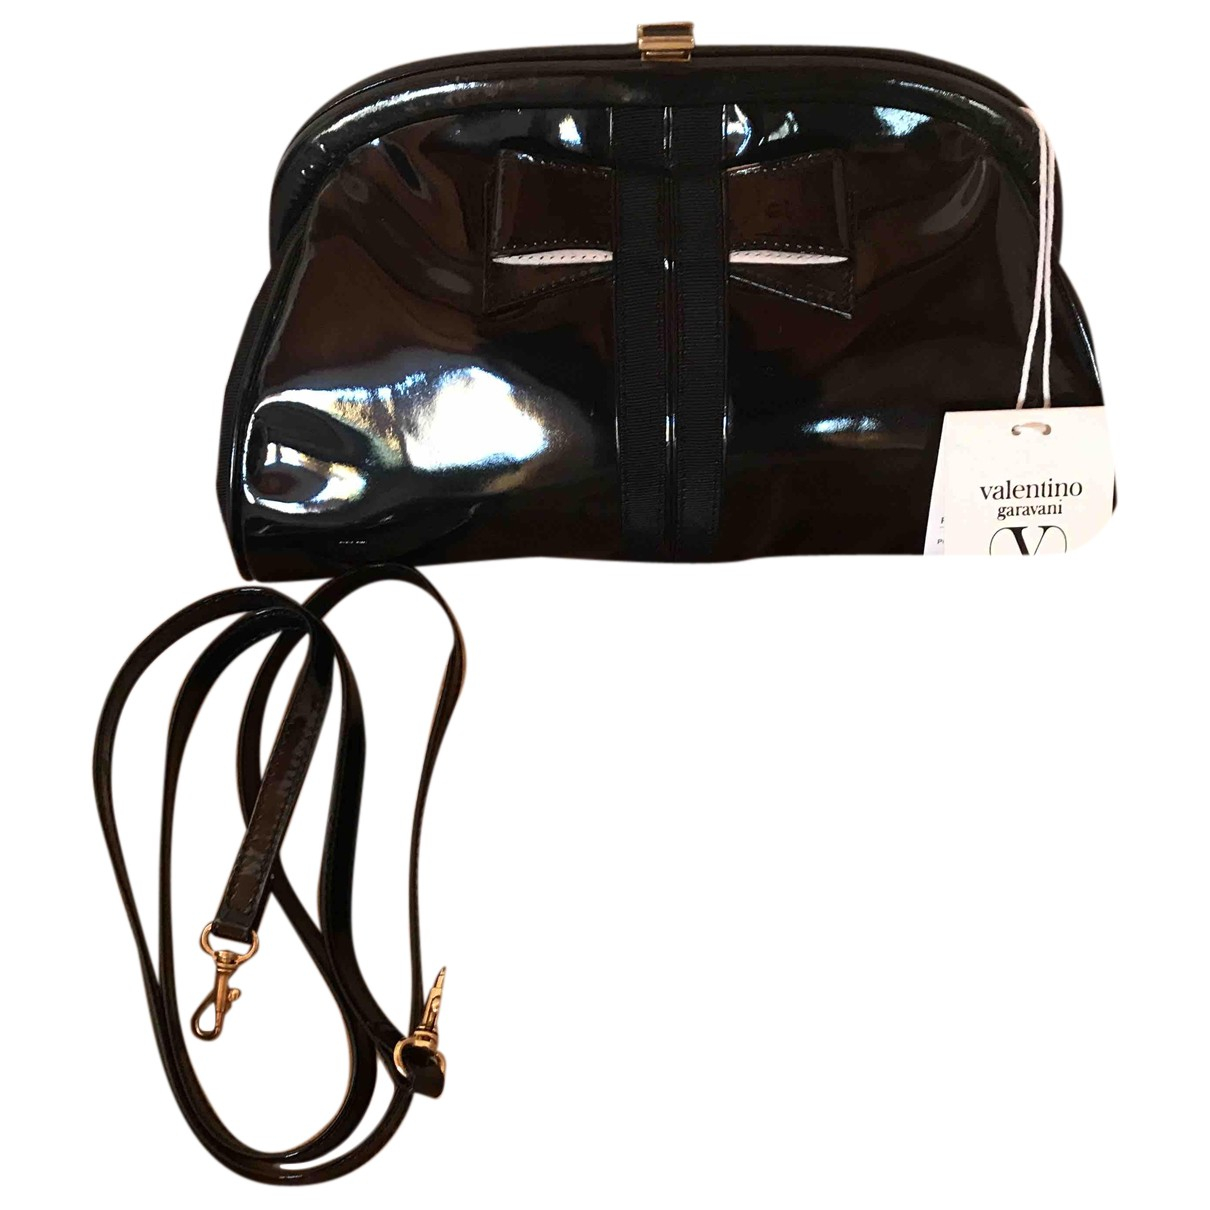 Valentino Garavani N Black Patent leather handbag for Women N